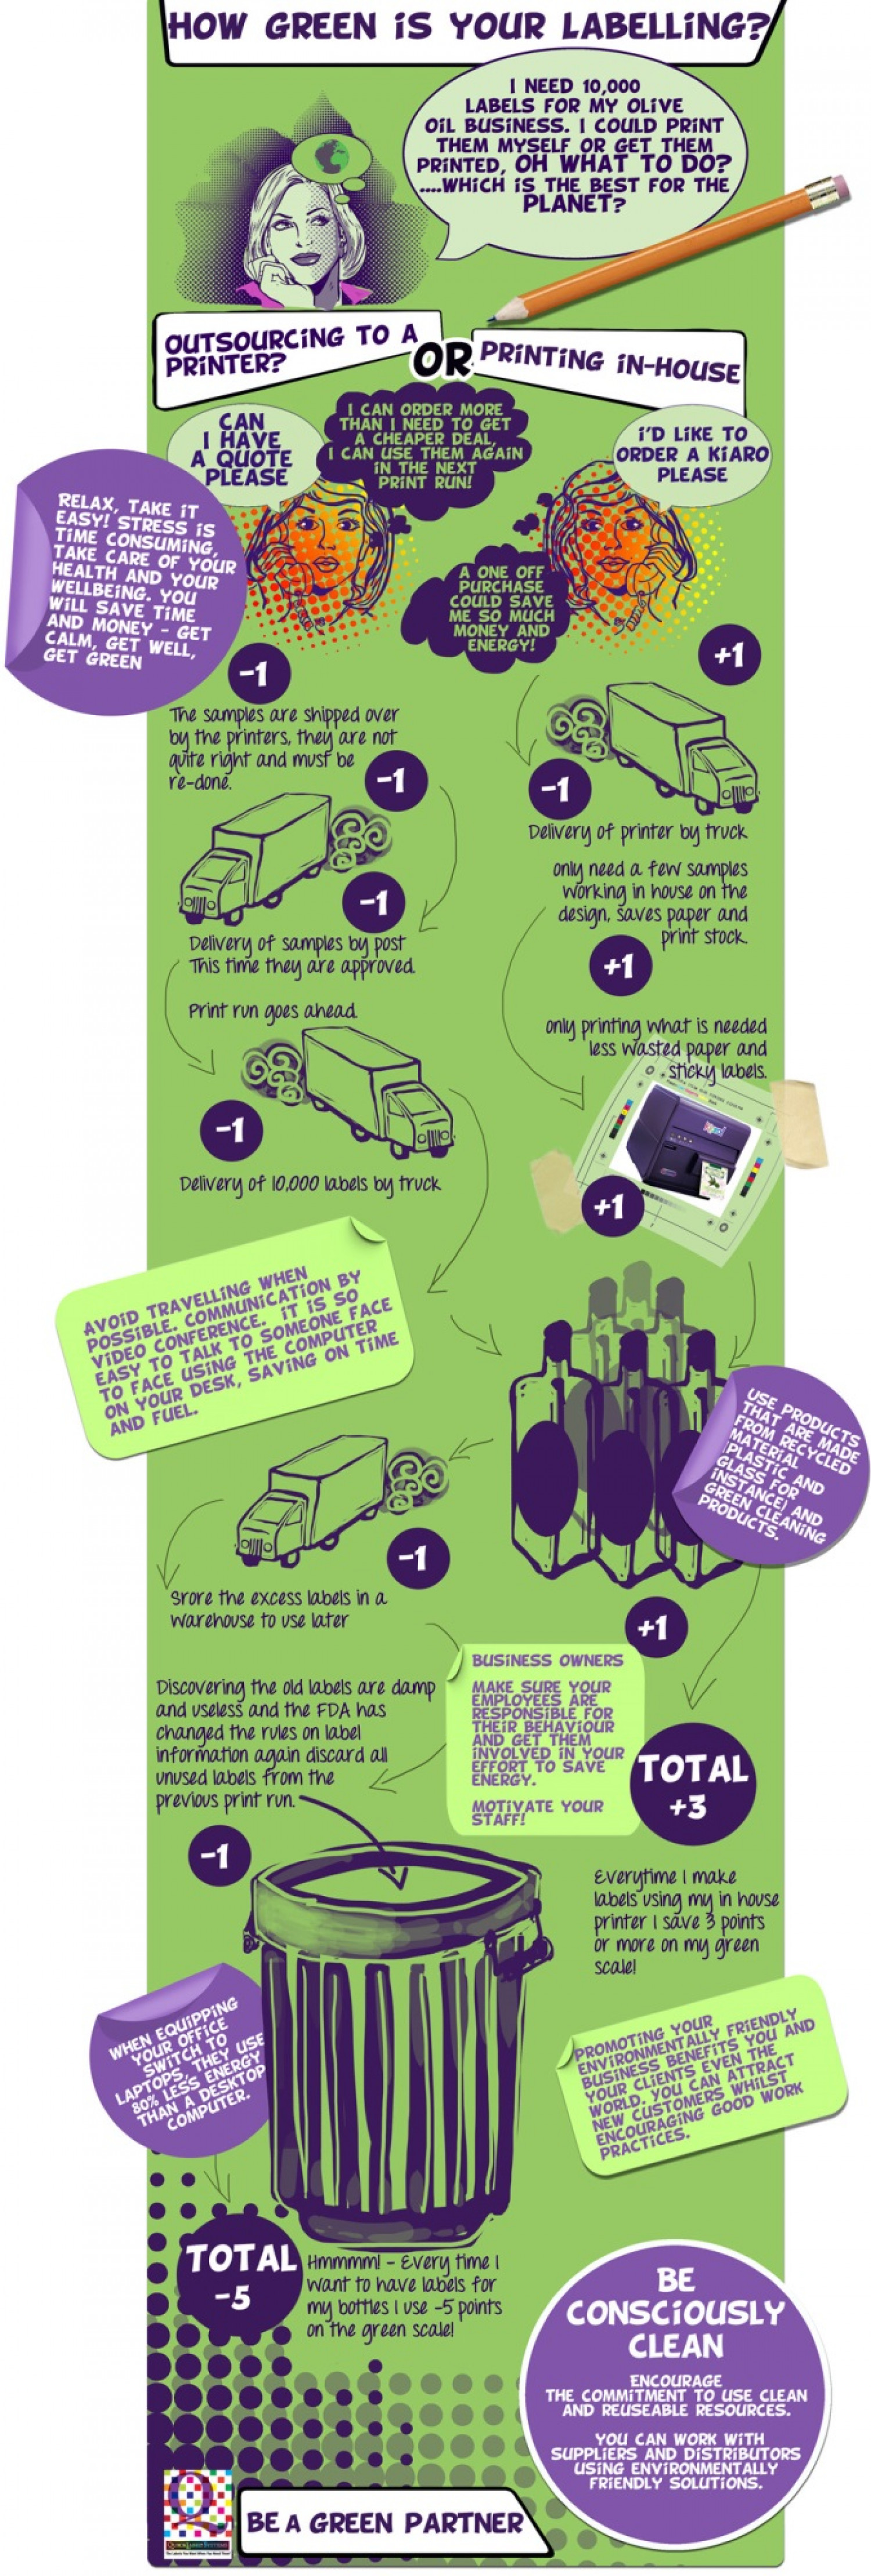 How Green Is Your Labelling? Infographic